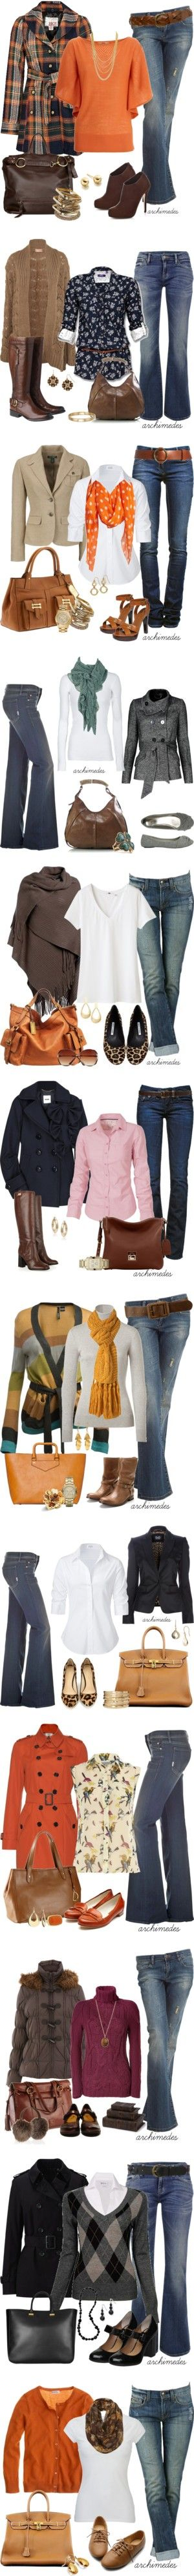 Dressed for Fall.: Fall Clothes, Outfit Ideas, Fall Colors, Clothing Style, Fall Outfits, Fall Fashion, Closet, Fall Winter Outfits, Fall Wardrobe